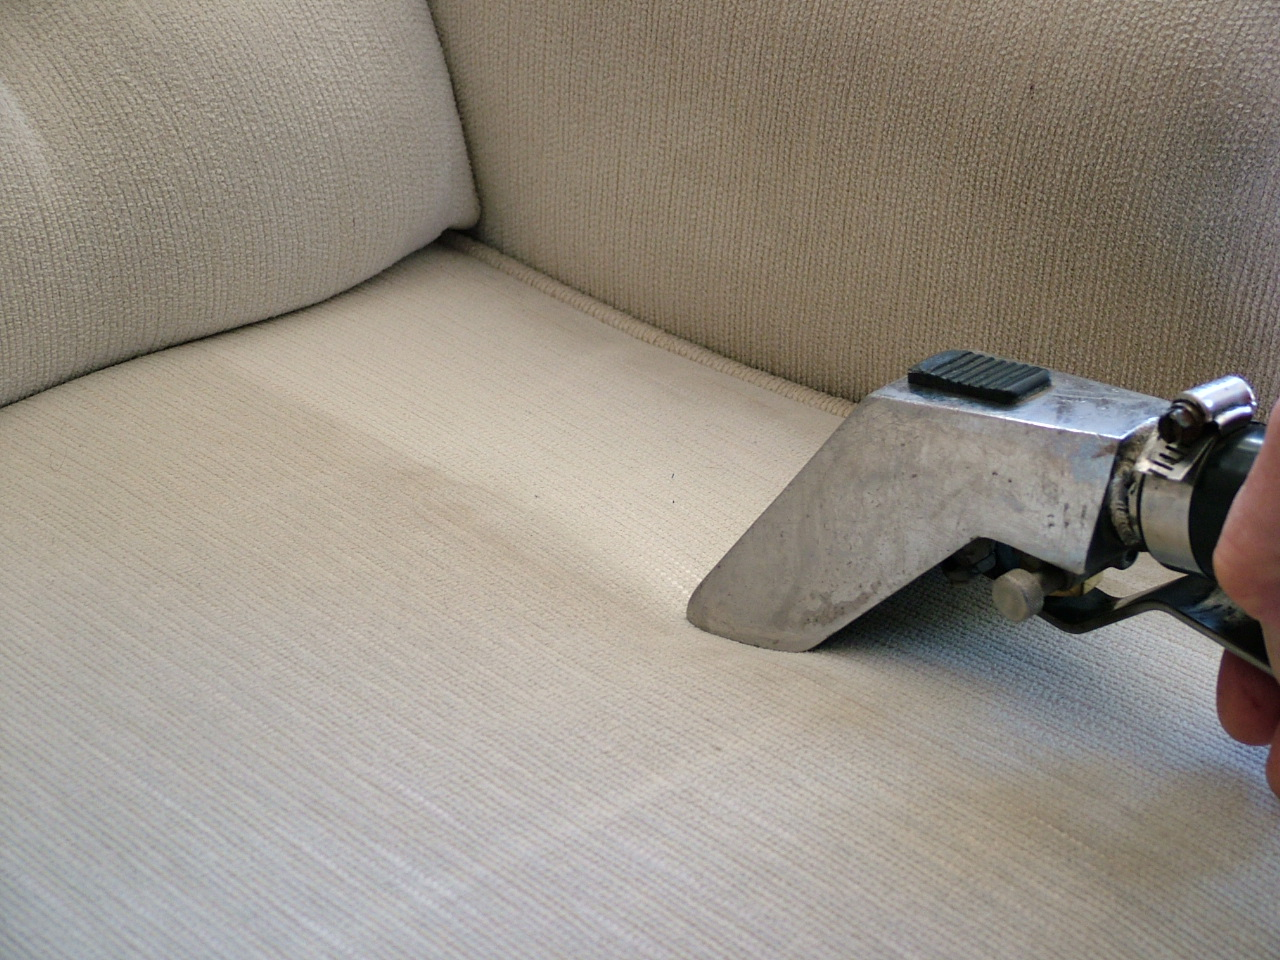 sofa dry cleaning cost emilia 2 piece leather set and loveseat upholstery steam carpet long island